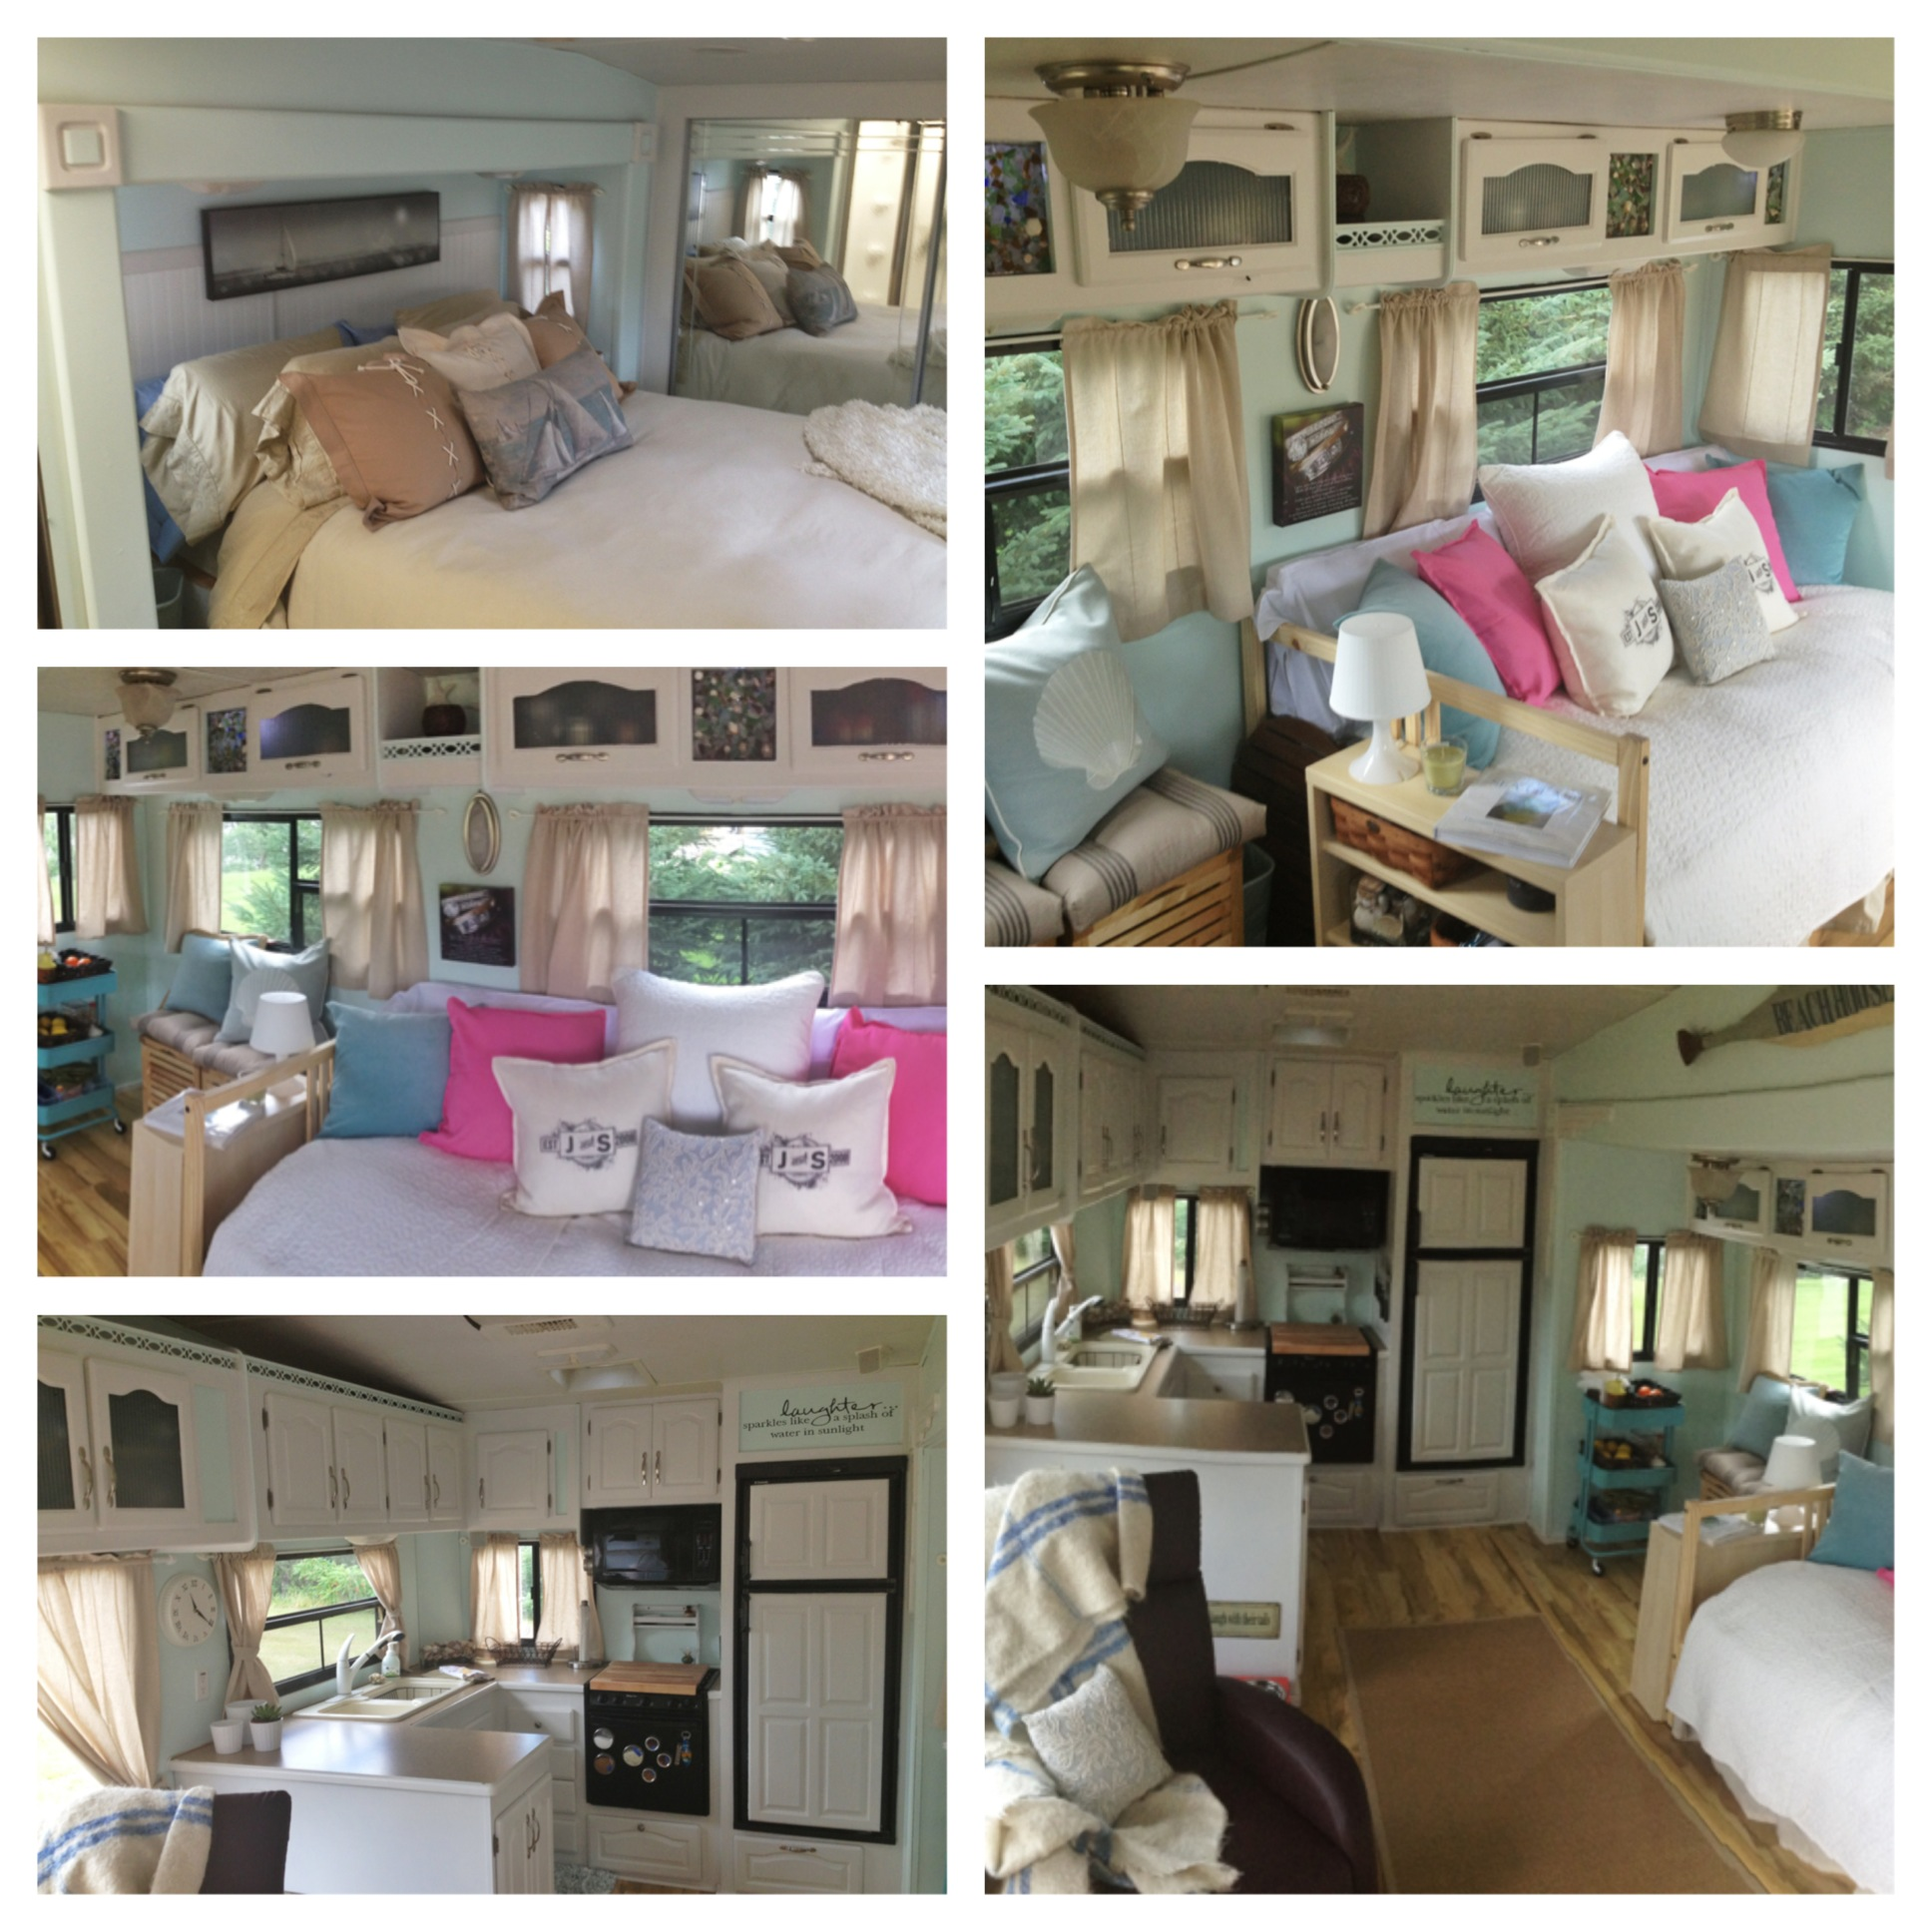 Kitchen Remodeling Services For RVs In Your Area - RV Repair Now